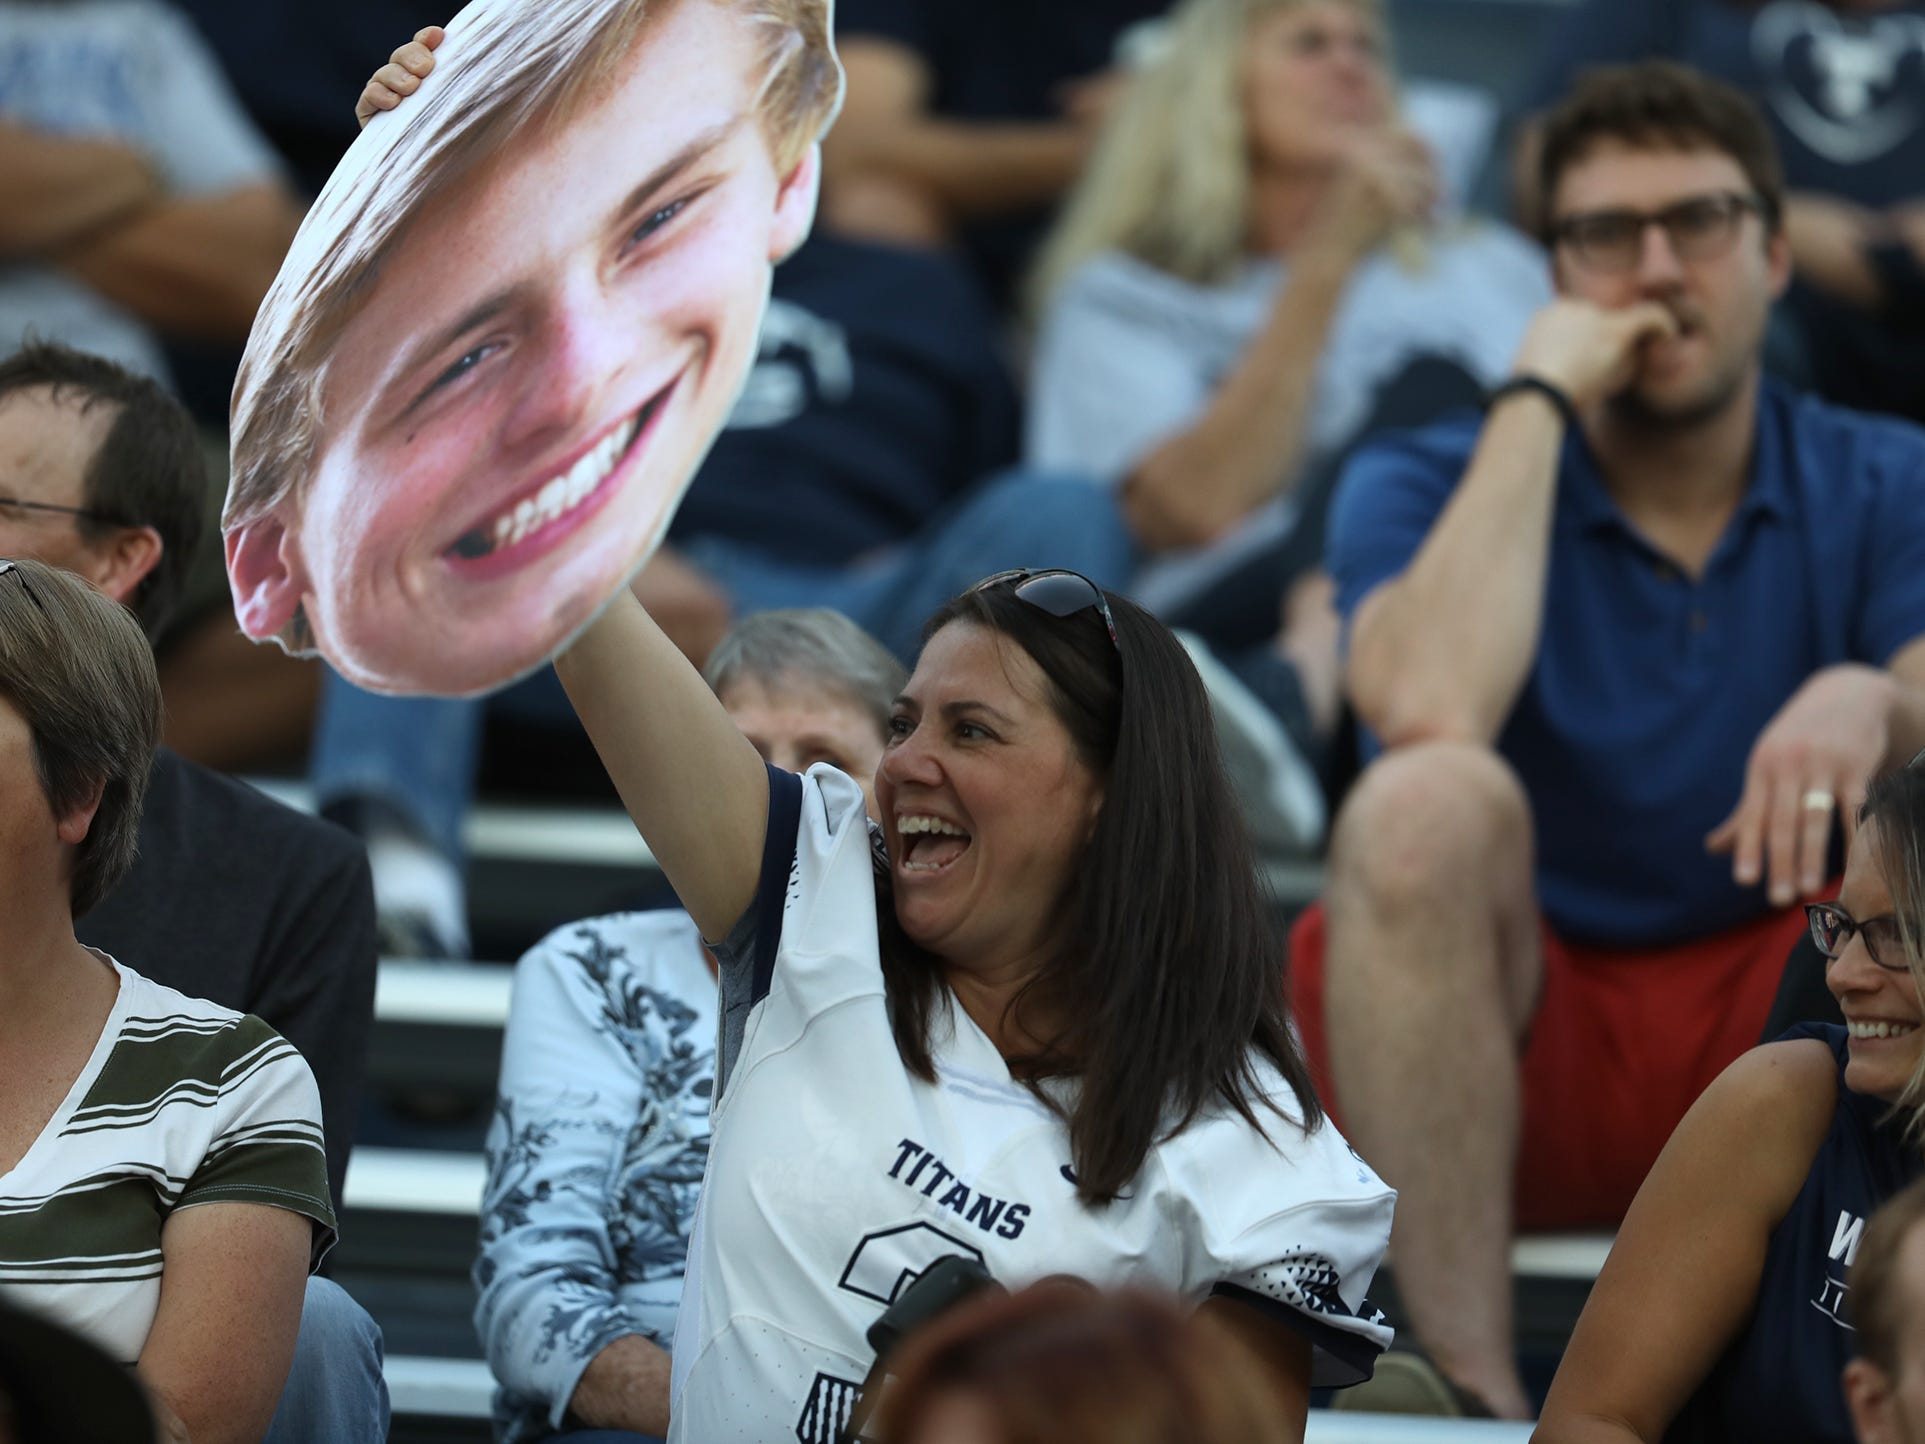 Nichole Canfield, holds up a large photo of her son, Jake Canfield, who is the quarterback of Webster Thomas football team, and waves it to someone in the stands during Friday night's game against Greece Athena.